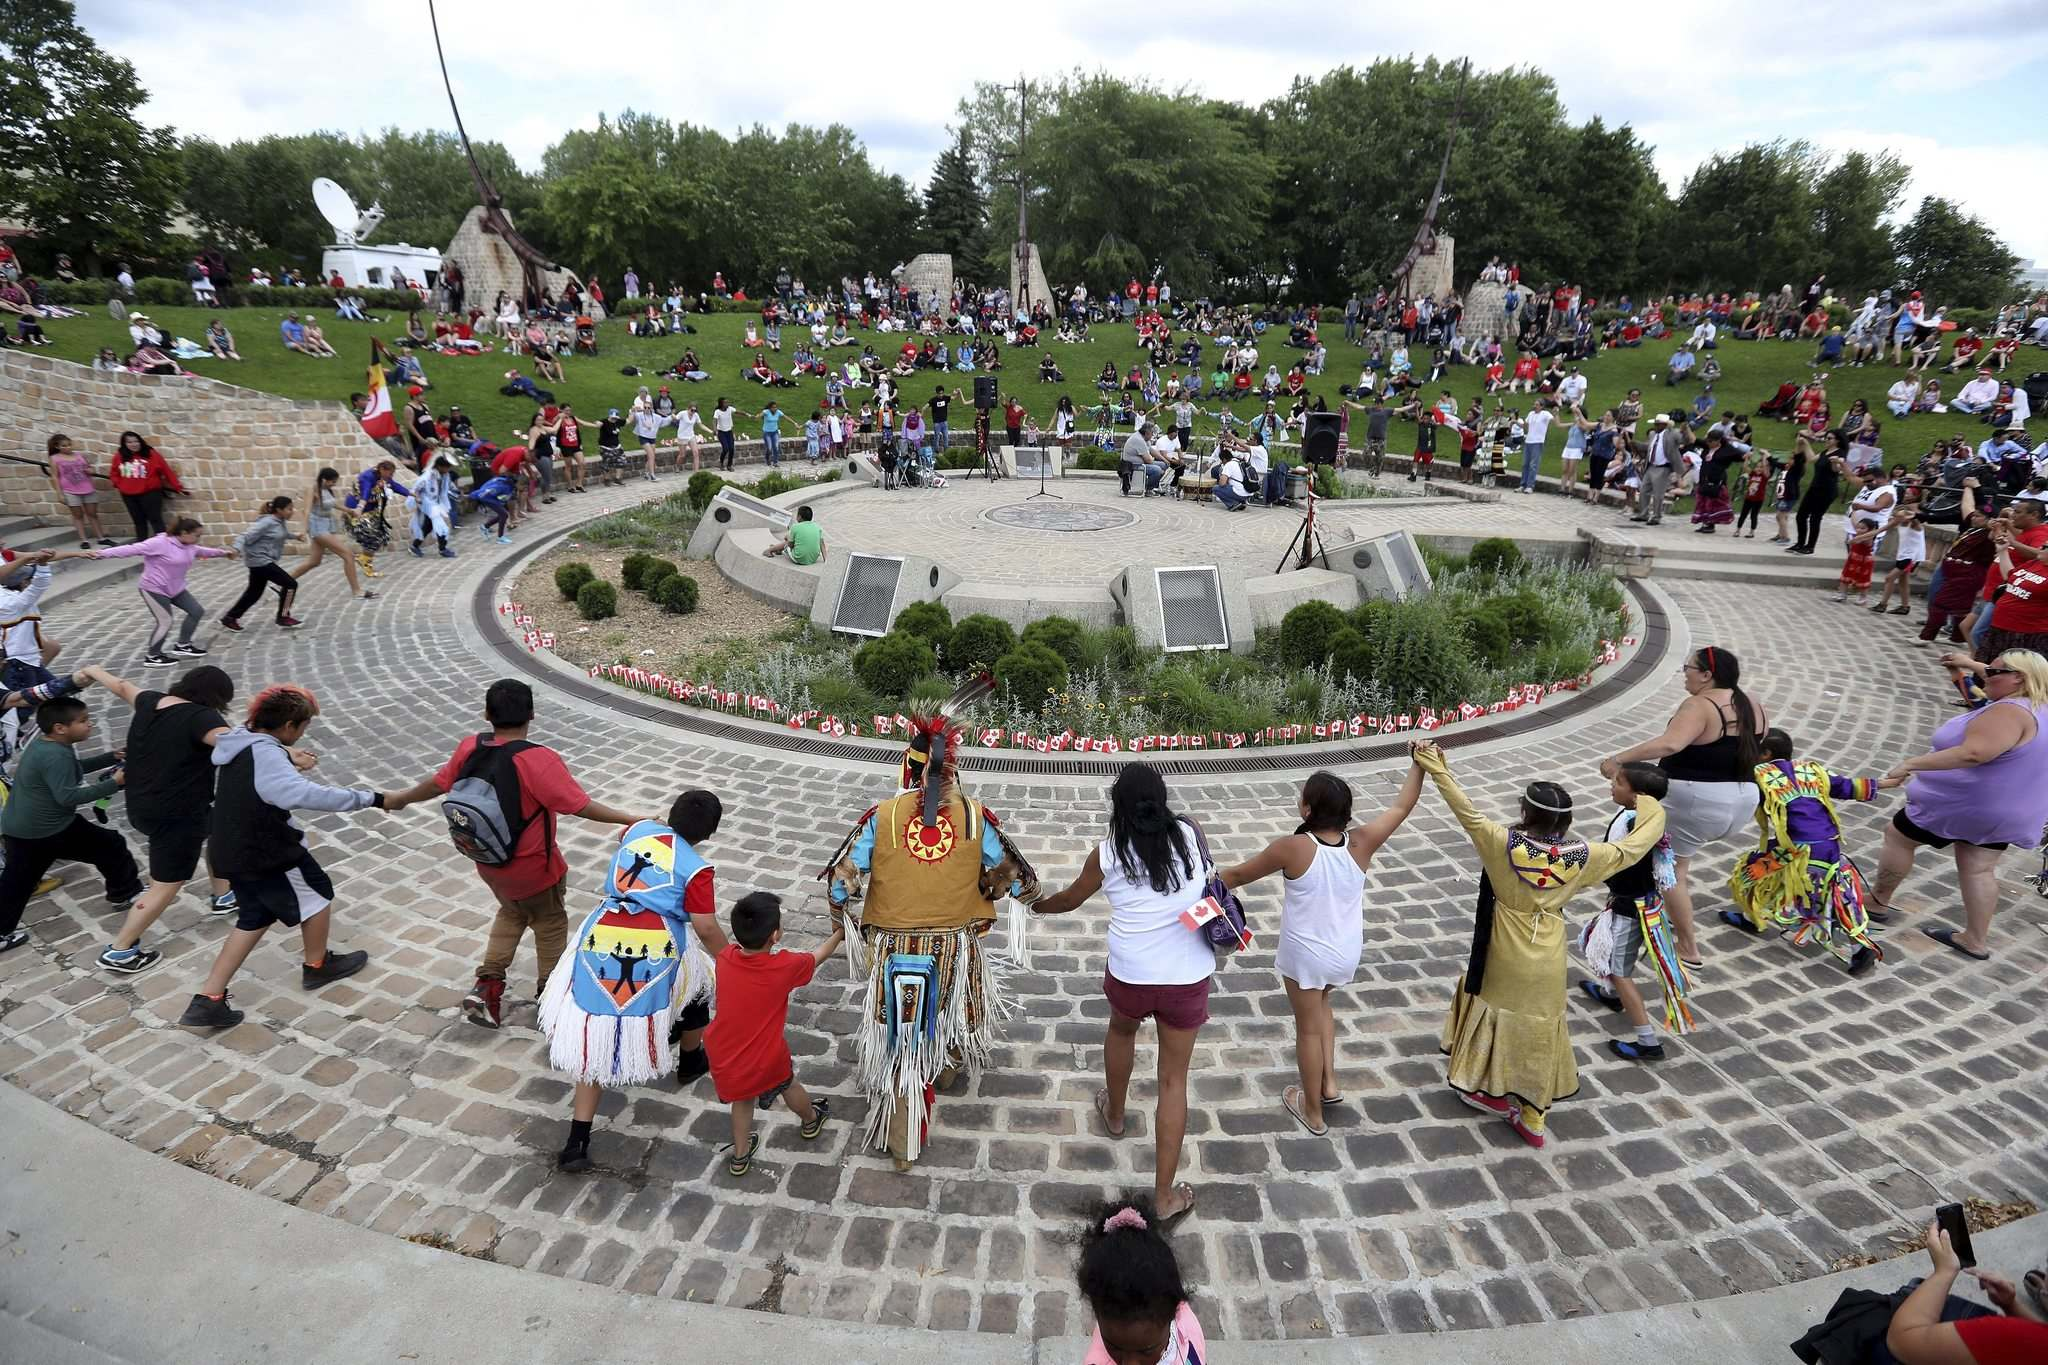 TREVOR HAGAN / WINNIPEG FREE PRESS</p><p>A crowd dances around drummers in the Oodena Celebration Circle during Canada Day festivities Saturday at The Forks.</p>